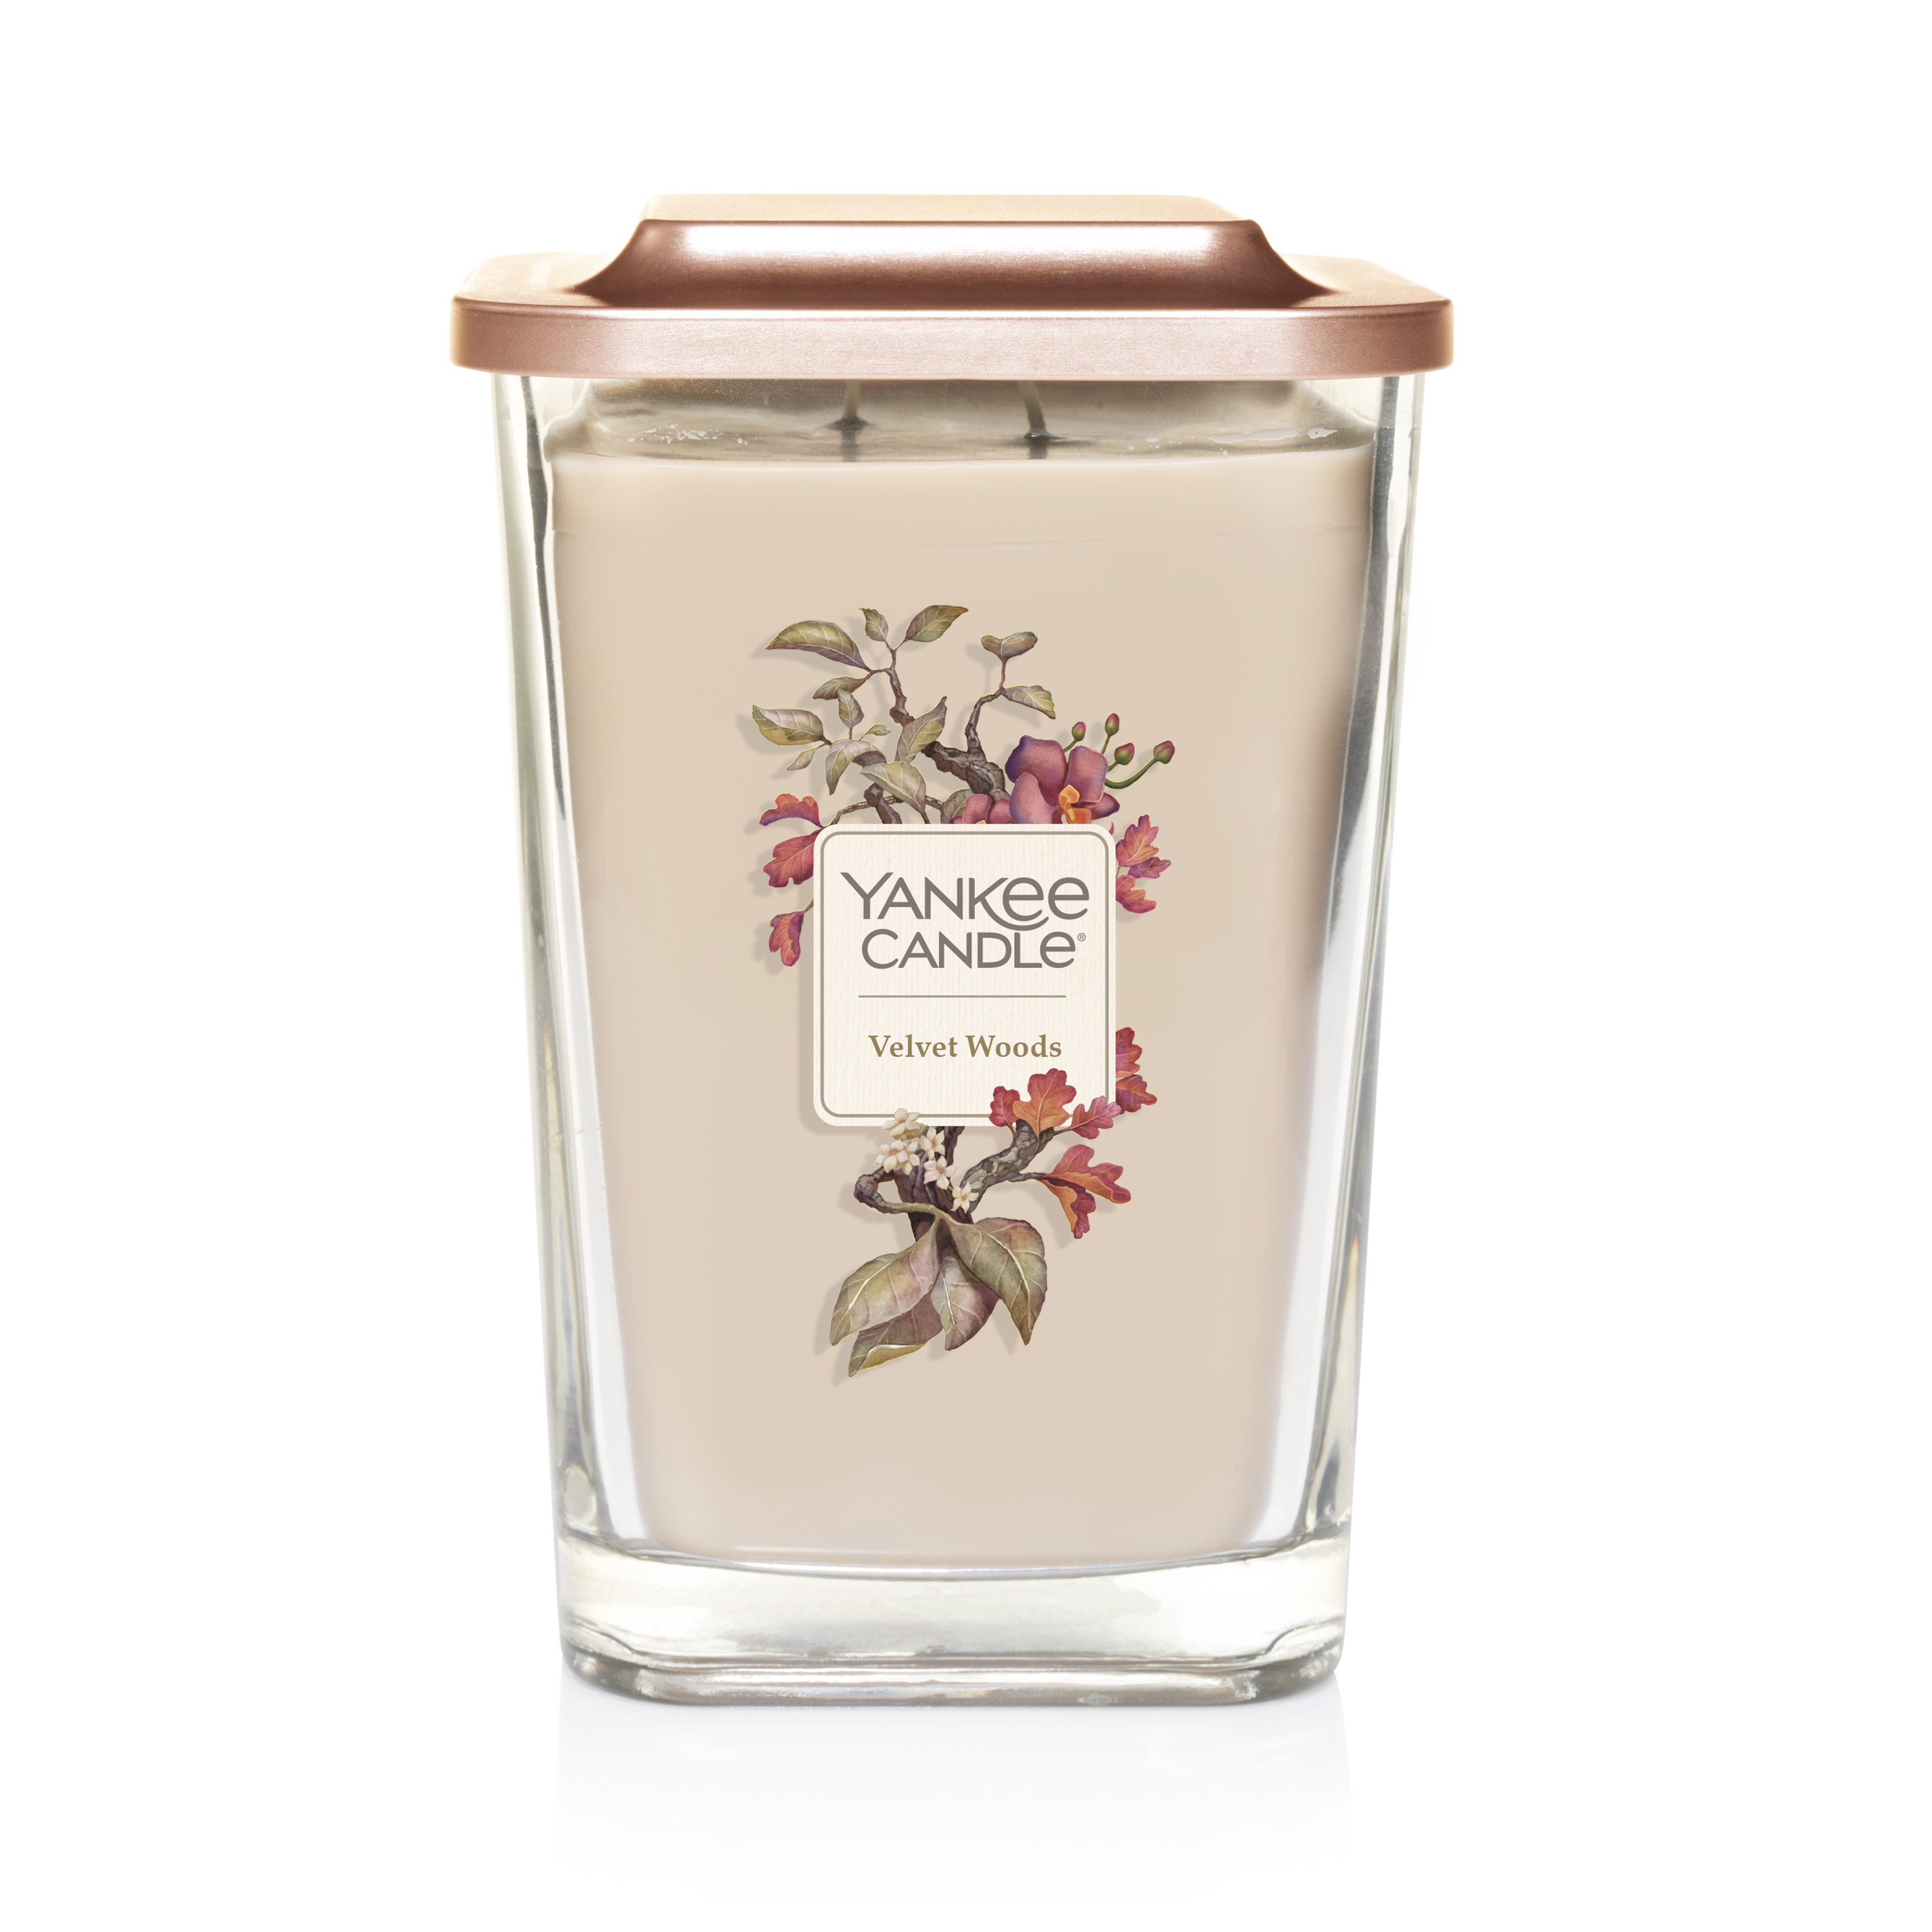 Yankee Candle Velvet Woods Elevation Collection with Platform Lid - Large 2-Wick Square Candle